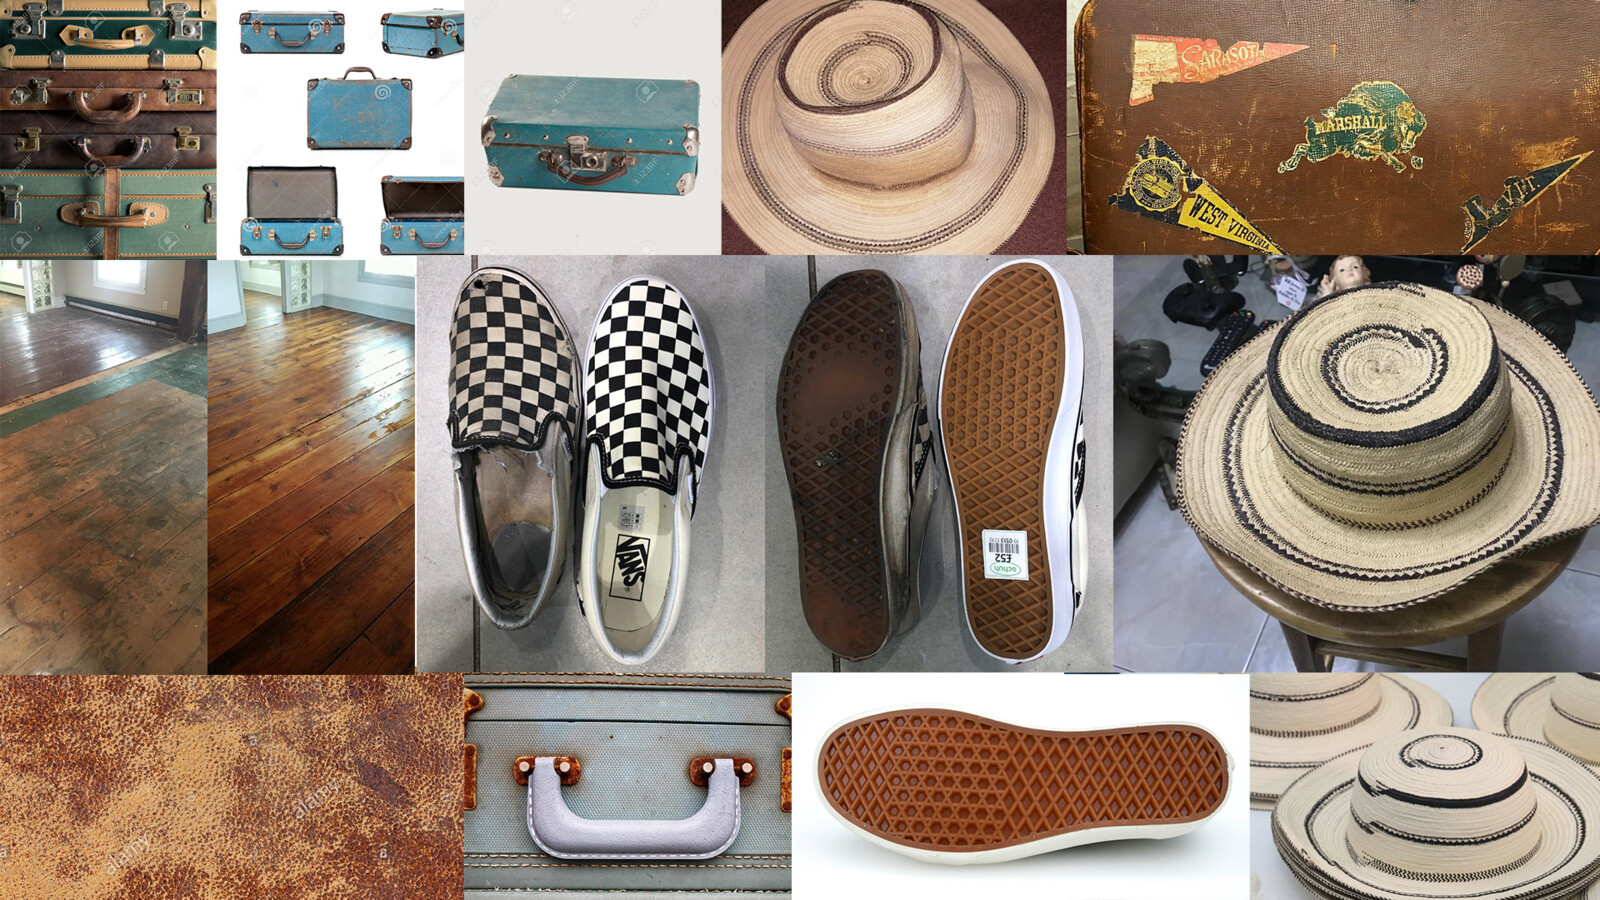 References used for both new and worn: leather handles, suitcase, hat, stickers, wood floor, slip on Vans.